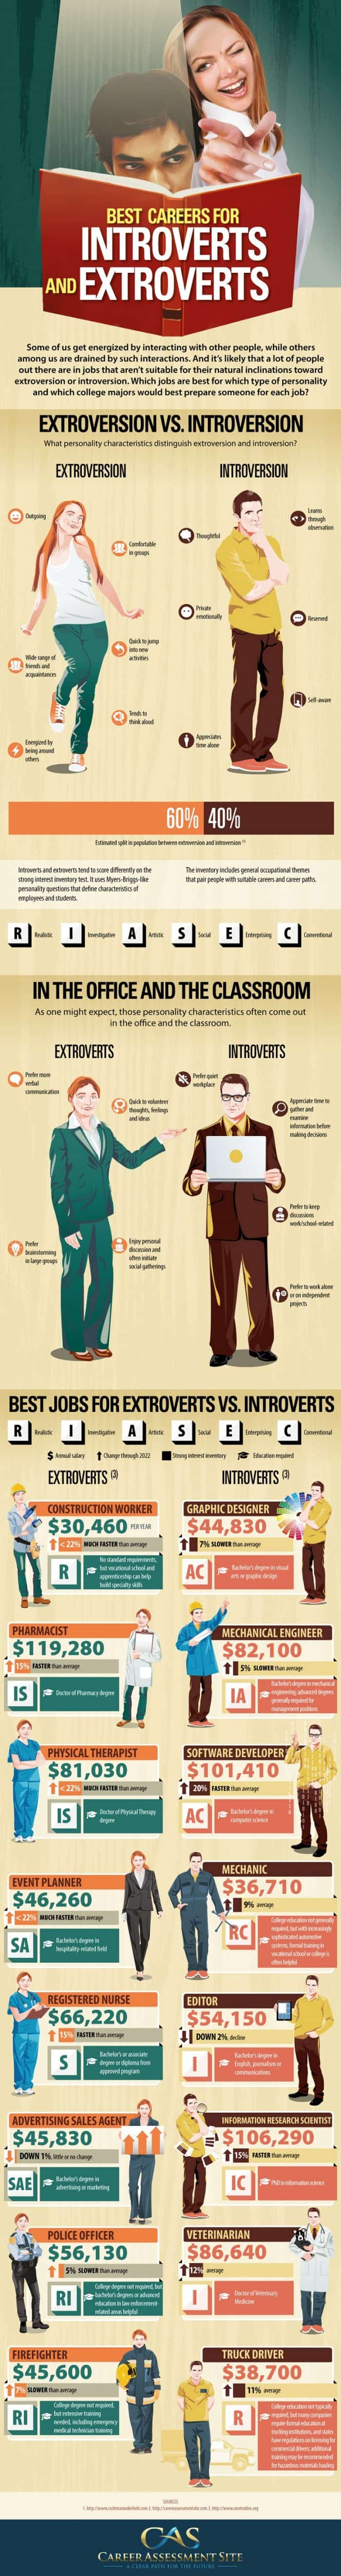 Best Careers For Introverts And Extroverts Infographic